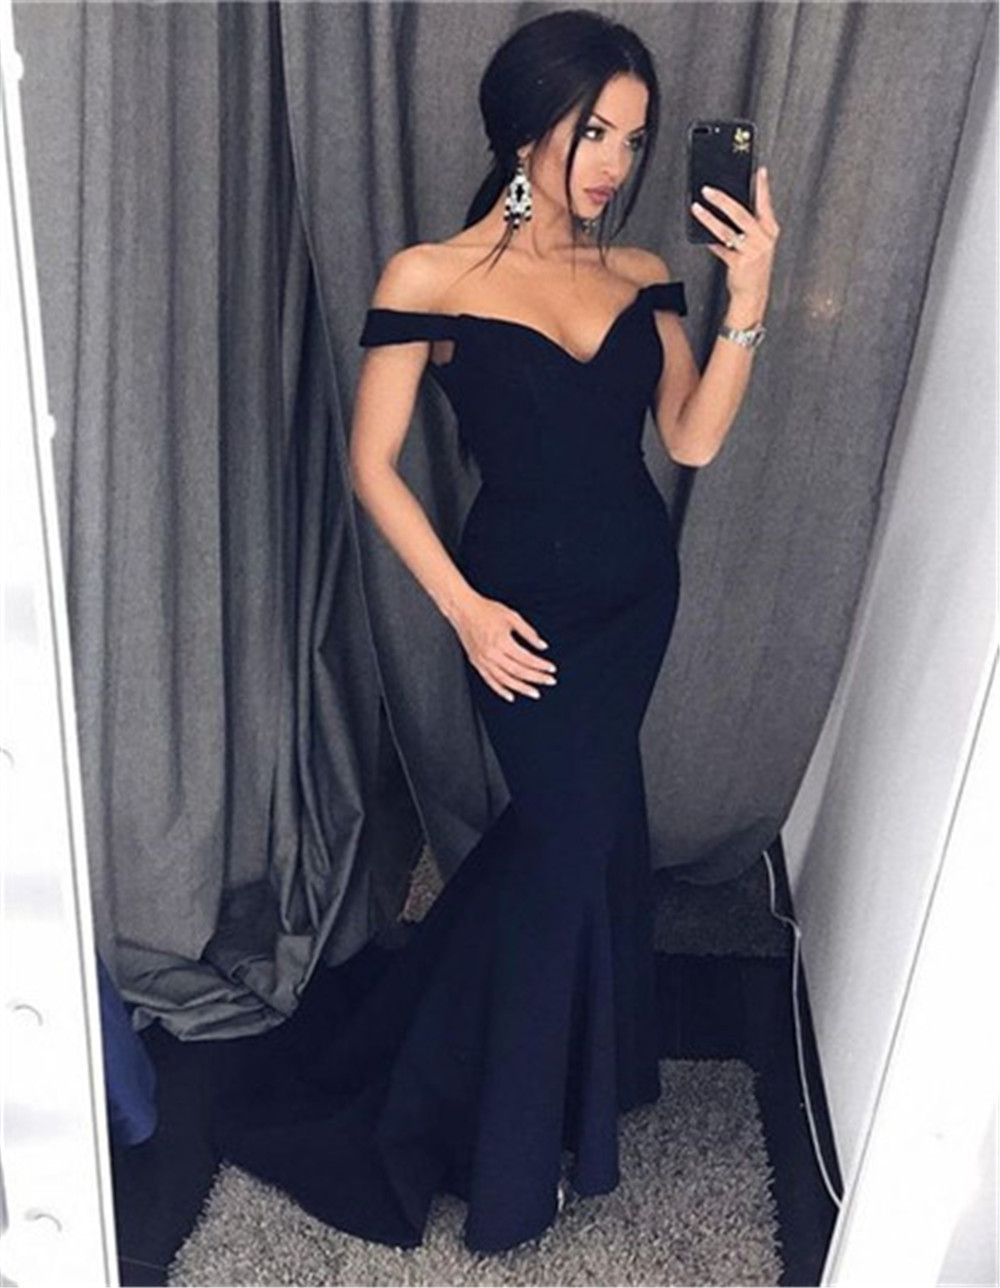 New 2019 Mermaid Black Formal Women Dresses Boat Neck Off The Shoulder Long Dress Bridesmaid Cheap Satin Wedding Party Gowns